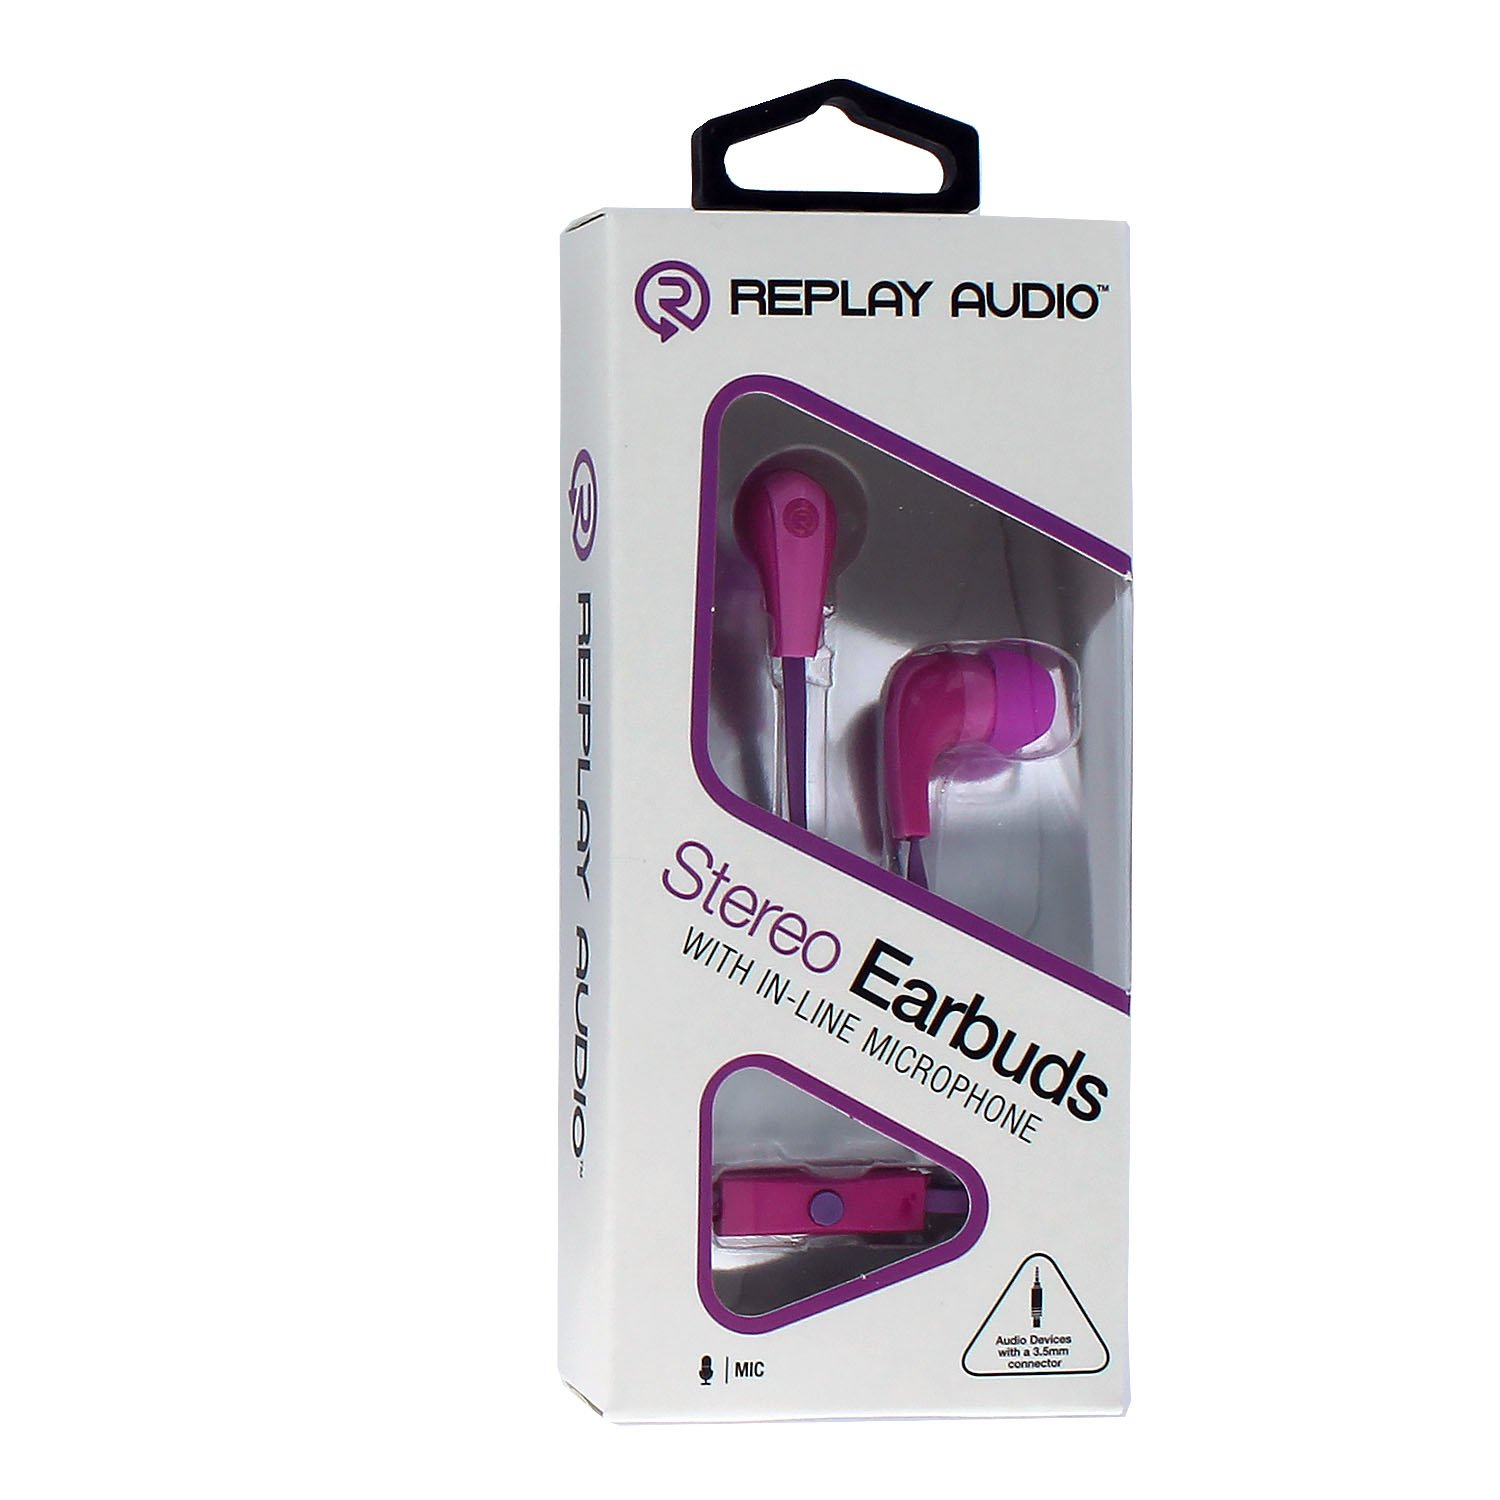 076daf593fc Replay Audio In-Ear Stereo Earbuds RPA-SHF2 With In-Line Mic & Remote Flat  Cord (Purple): Amazon.ca: Cell Phones & Accessories